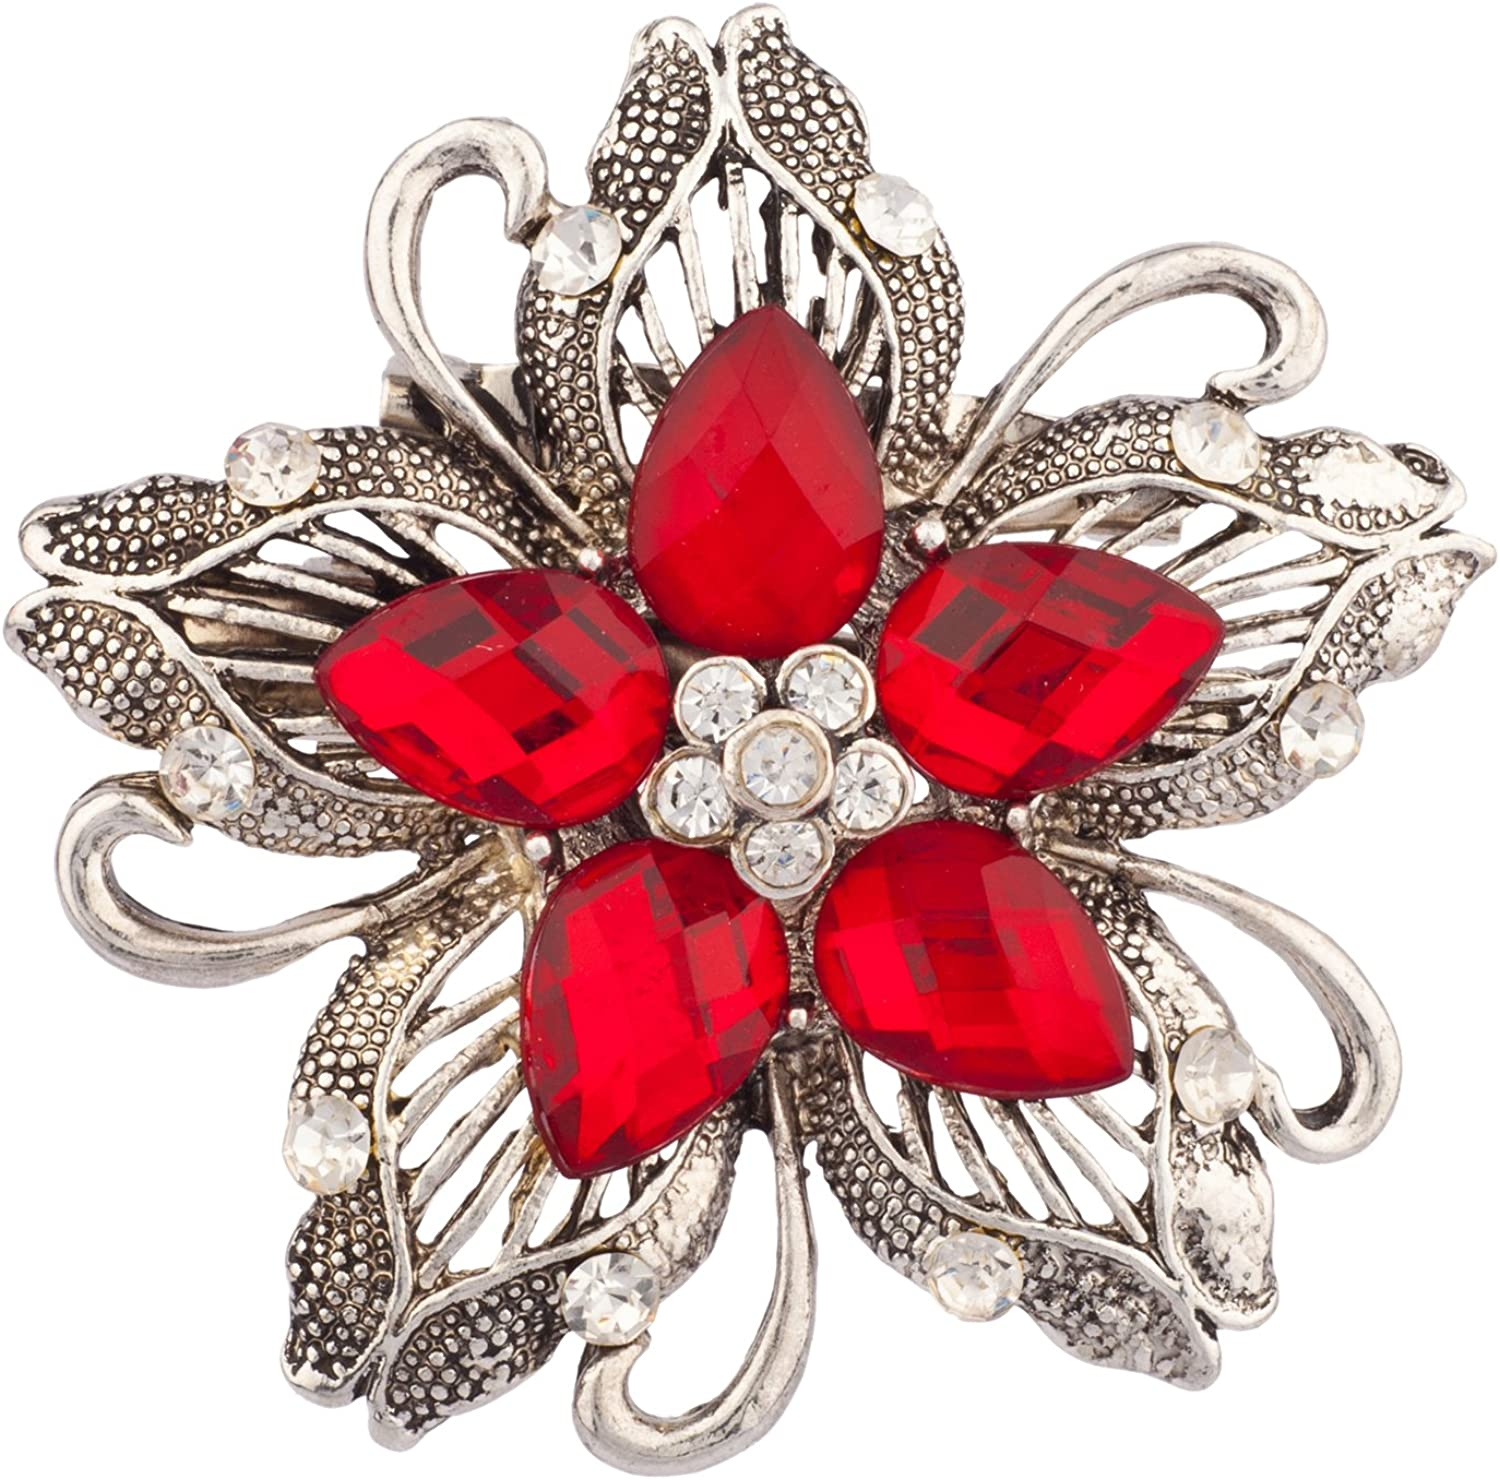 LUX ACCESSORIES Heirloom Limited time sale Stone Daily bargain sale Floral Brooch